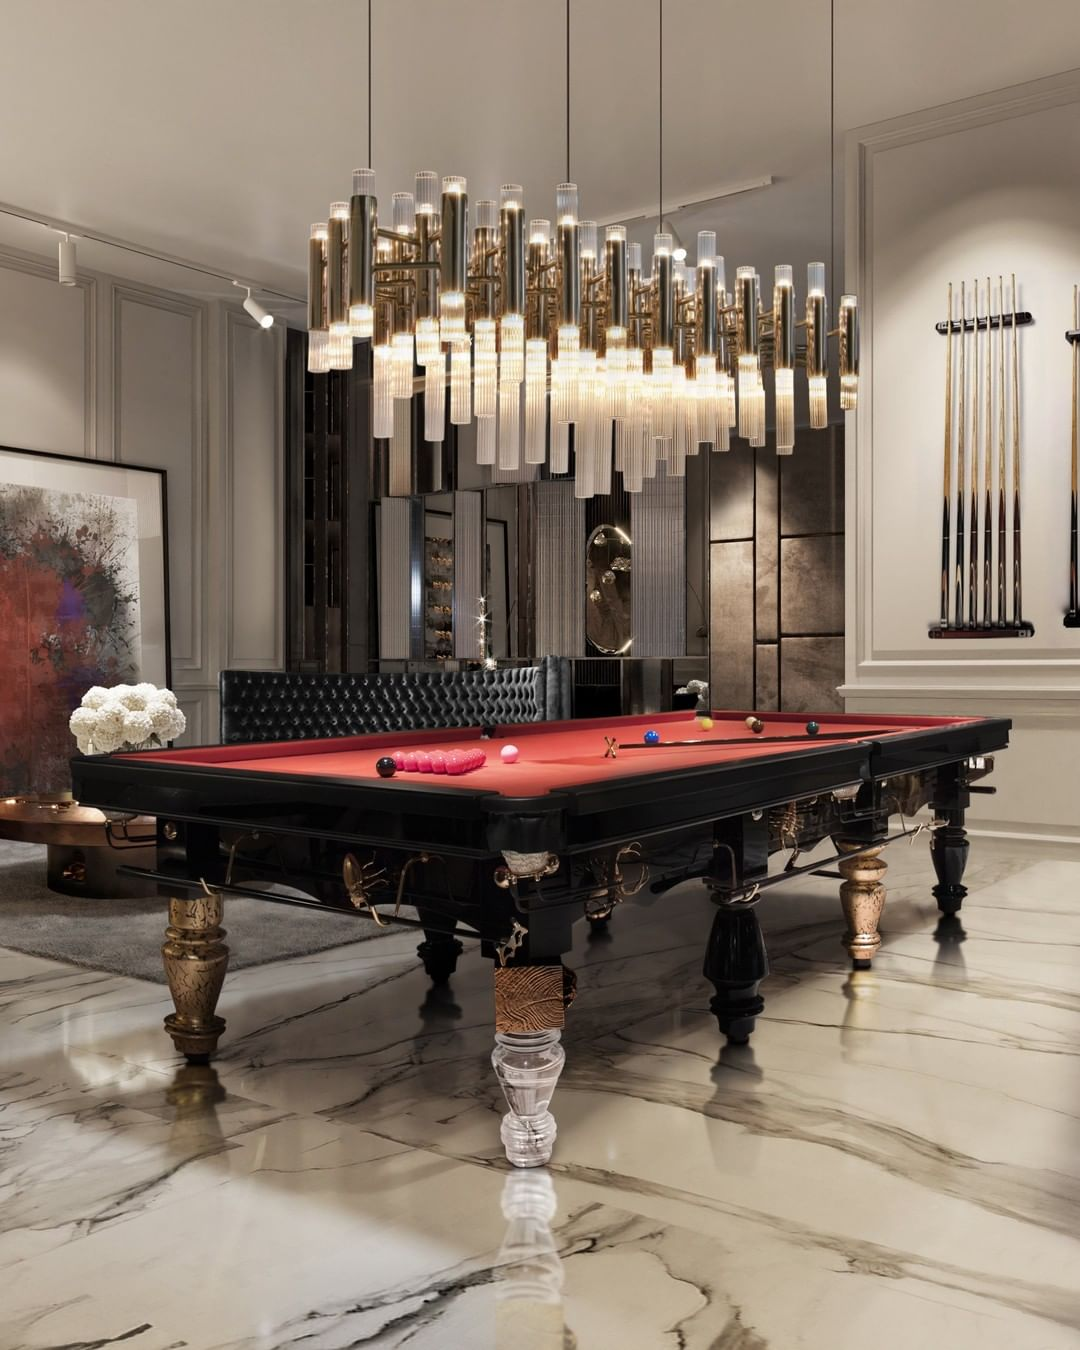 A tribute to the darkest side of nature where challenges never seize to exist. bl metarmophosis snooker table